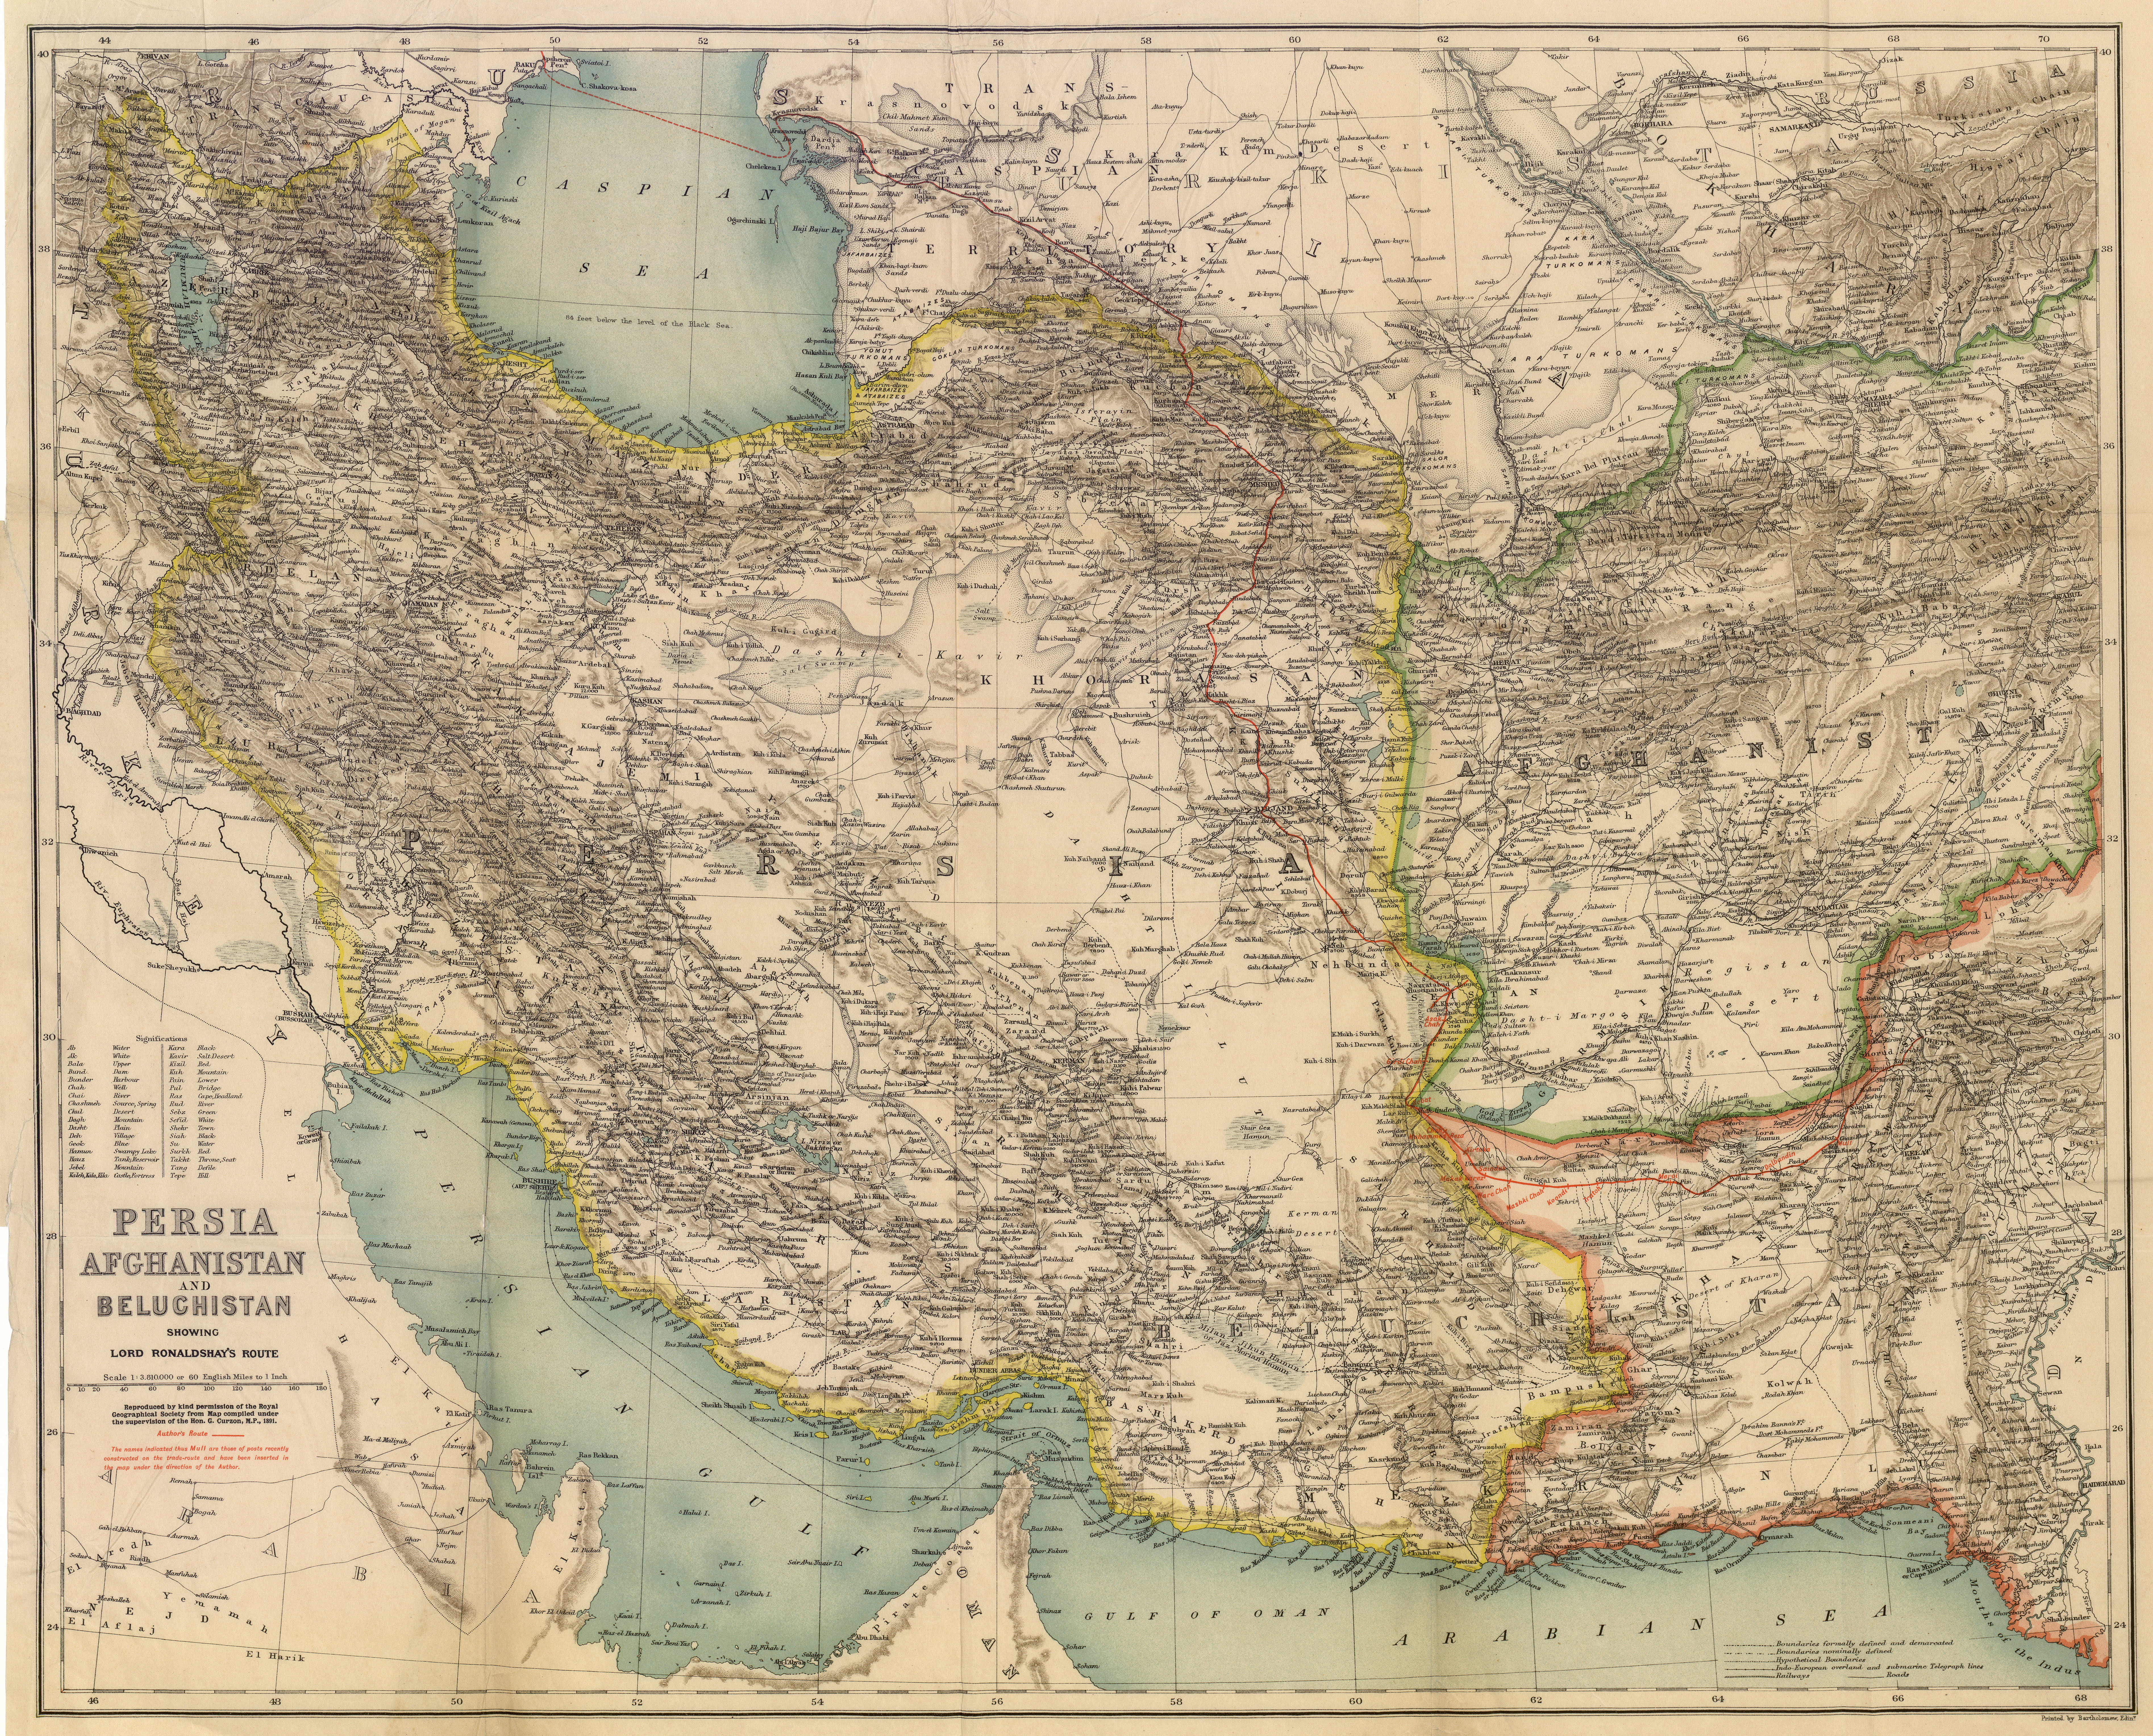 File:Persia-and-map-of-ancient-iran.jpg - Wikimedia Commons